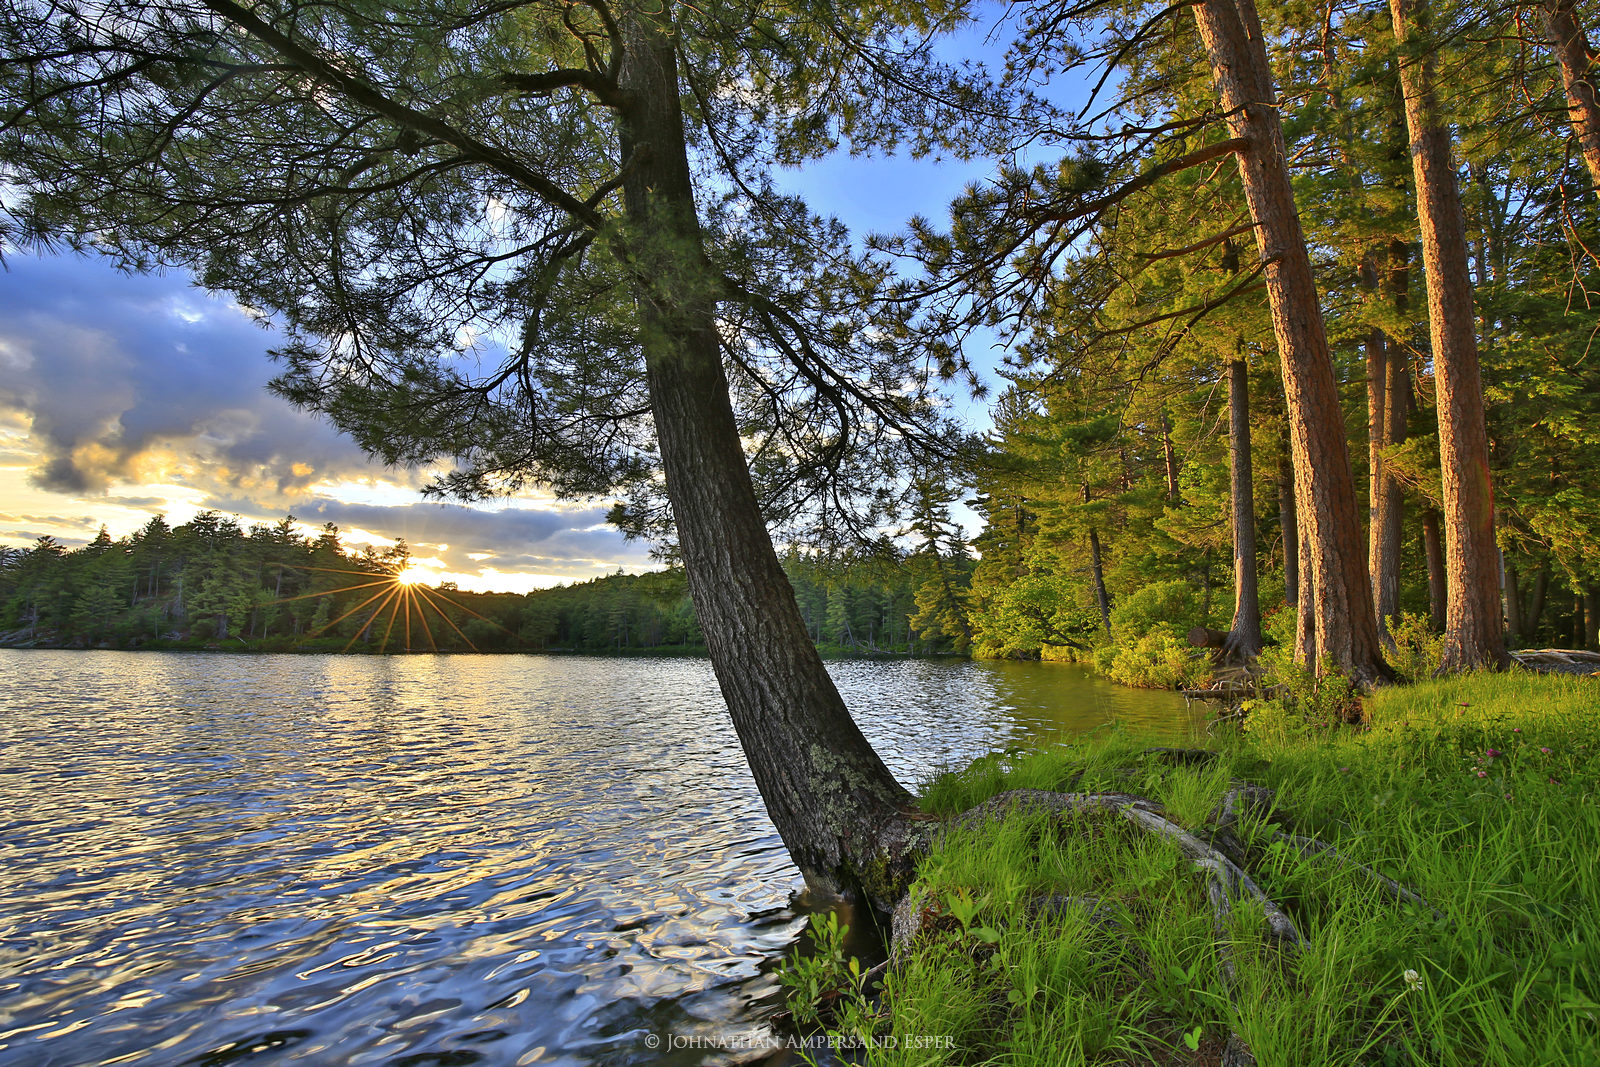 Little Green Pond,St Regis Wilderness,pines,summer,sunset,Adirondack pond,lakeshore,sunburst,, photo